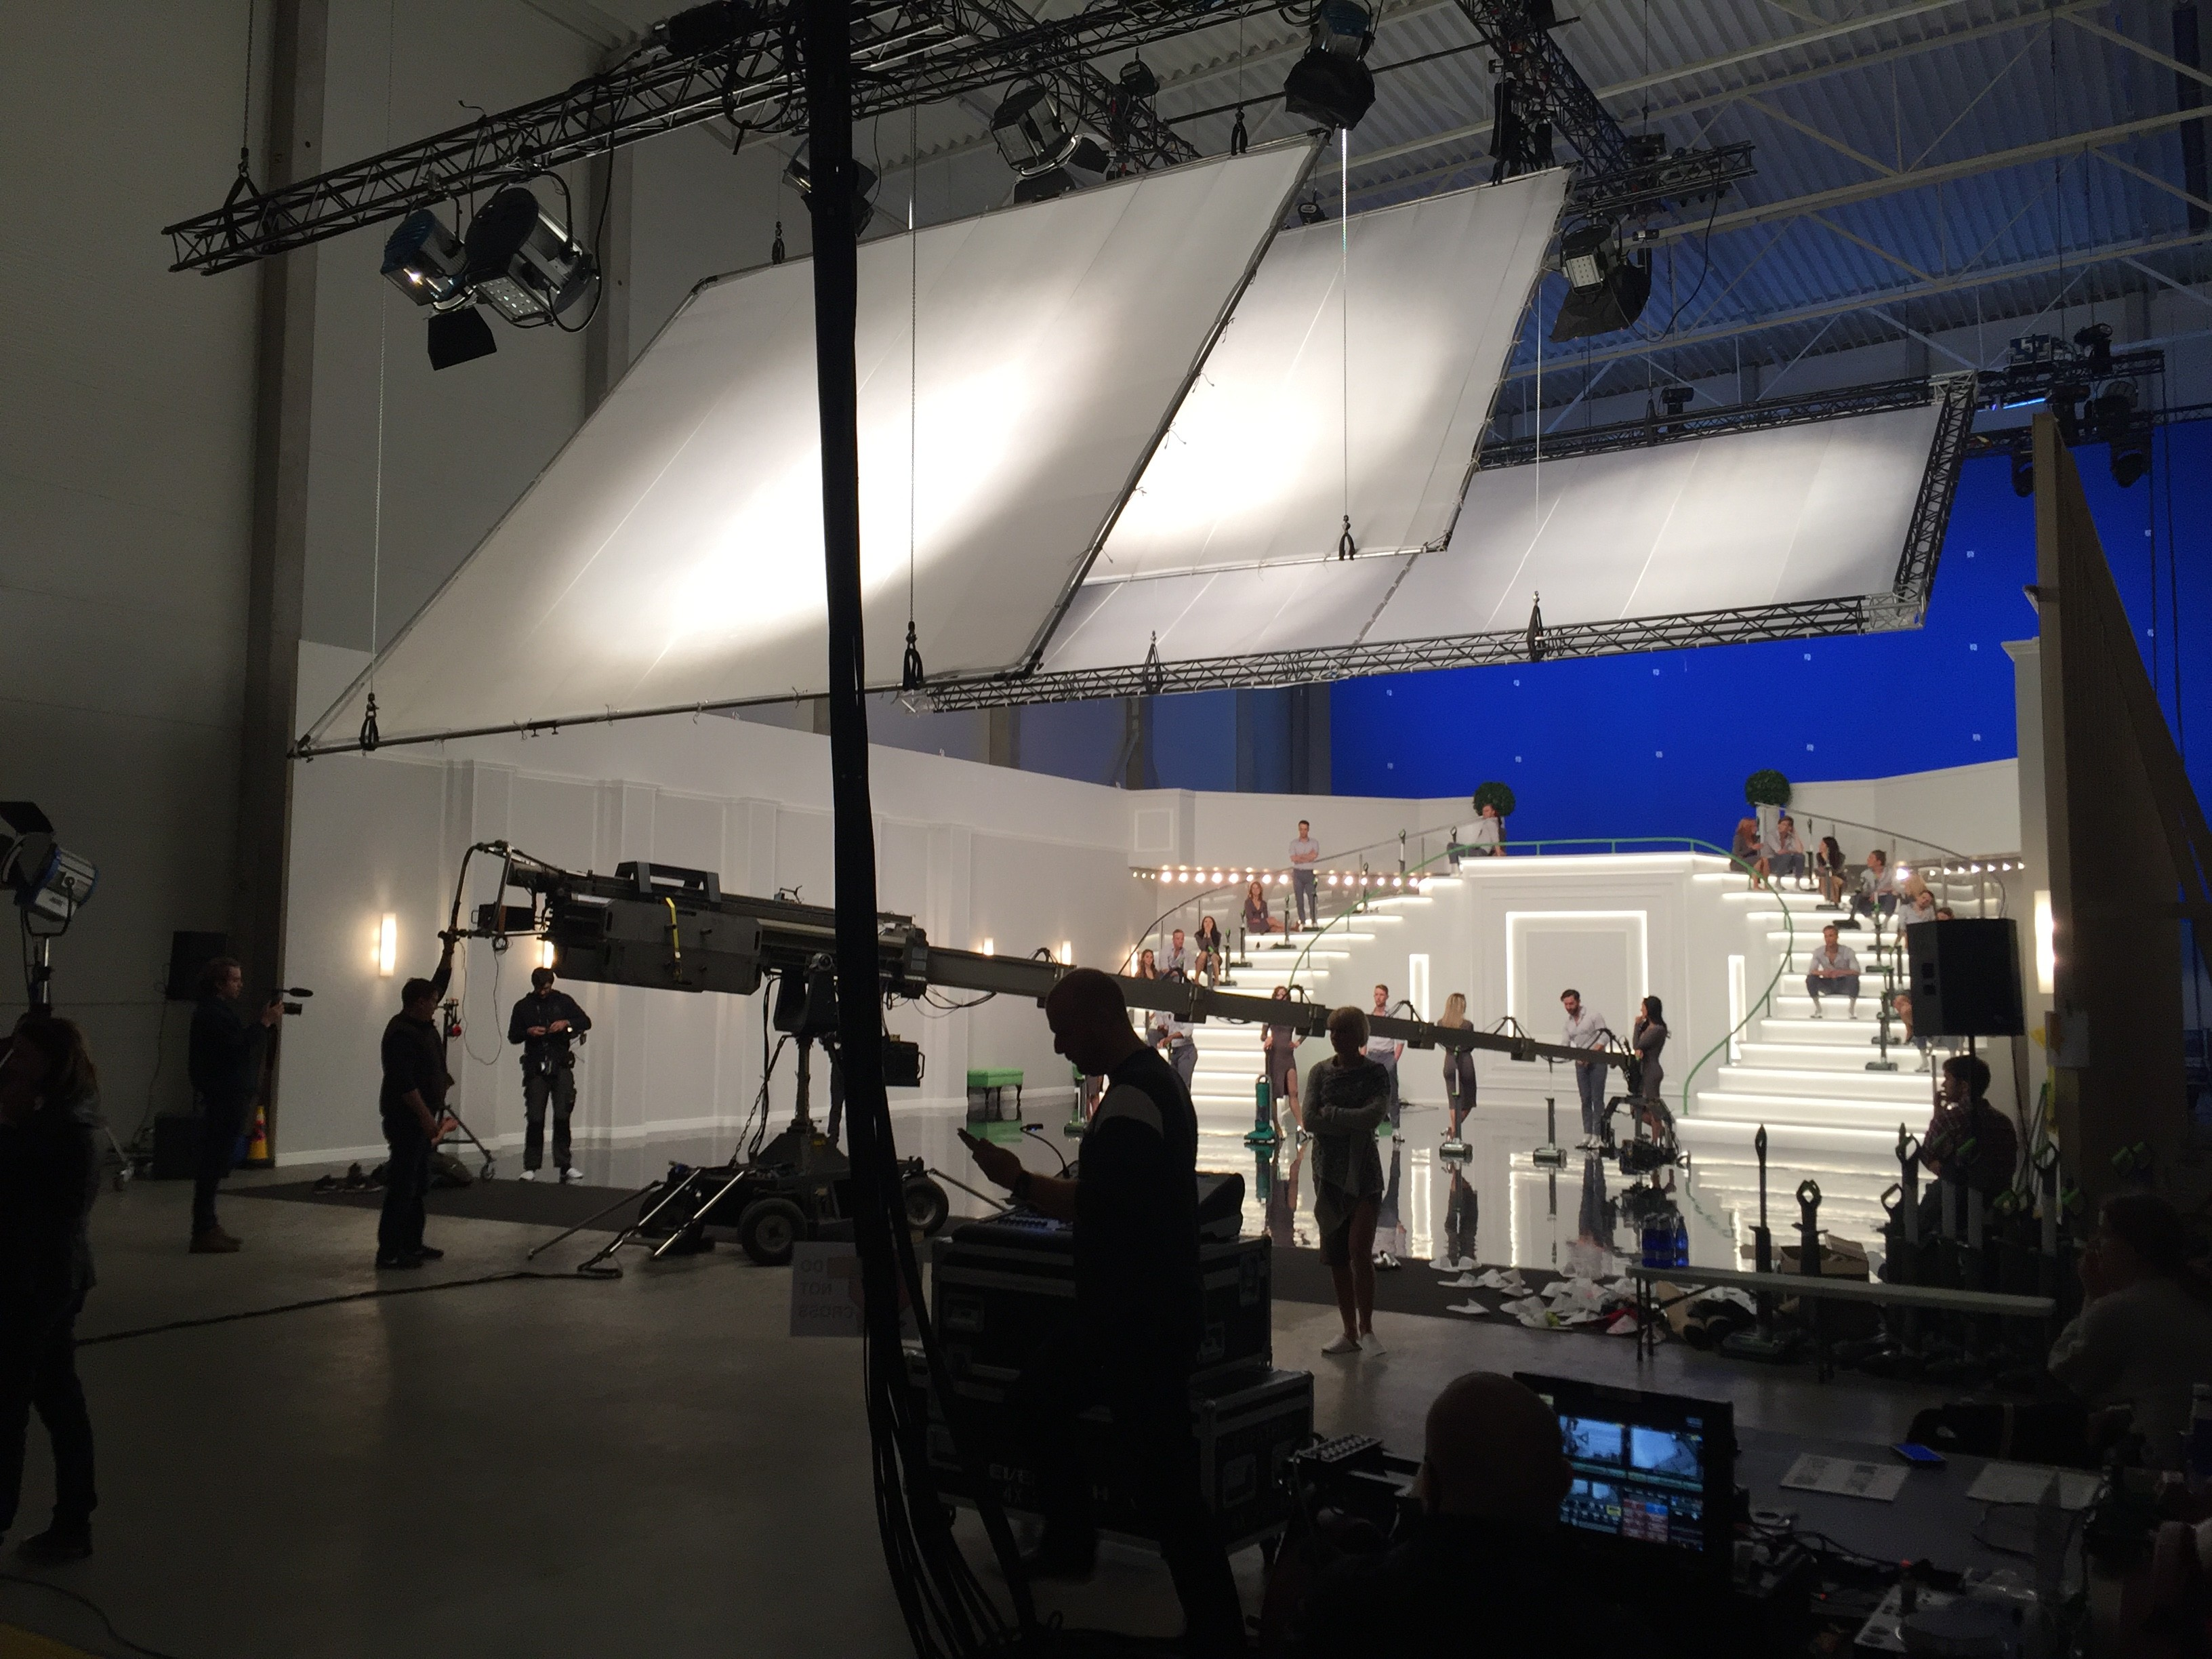 A temporary studio built in a warehouse to shoot a commercial for a UK-based client. Photo by Esko Rips